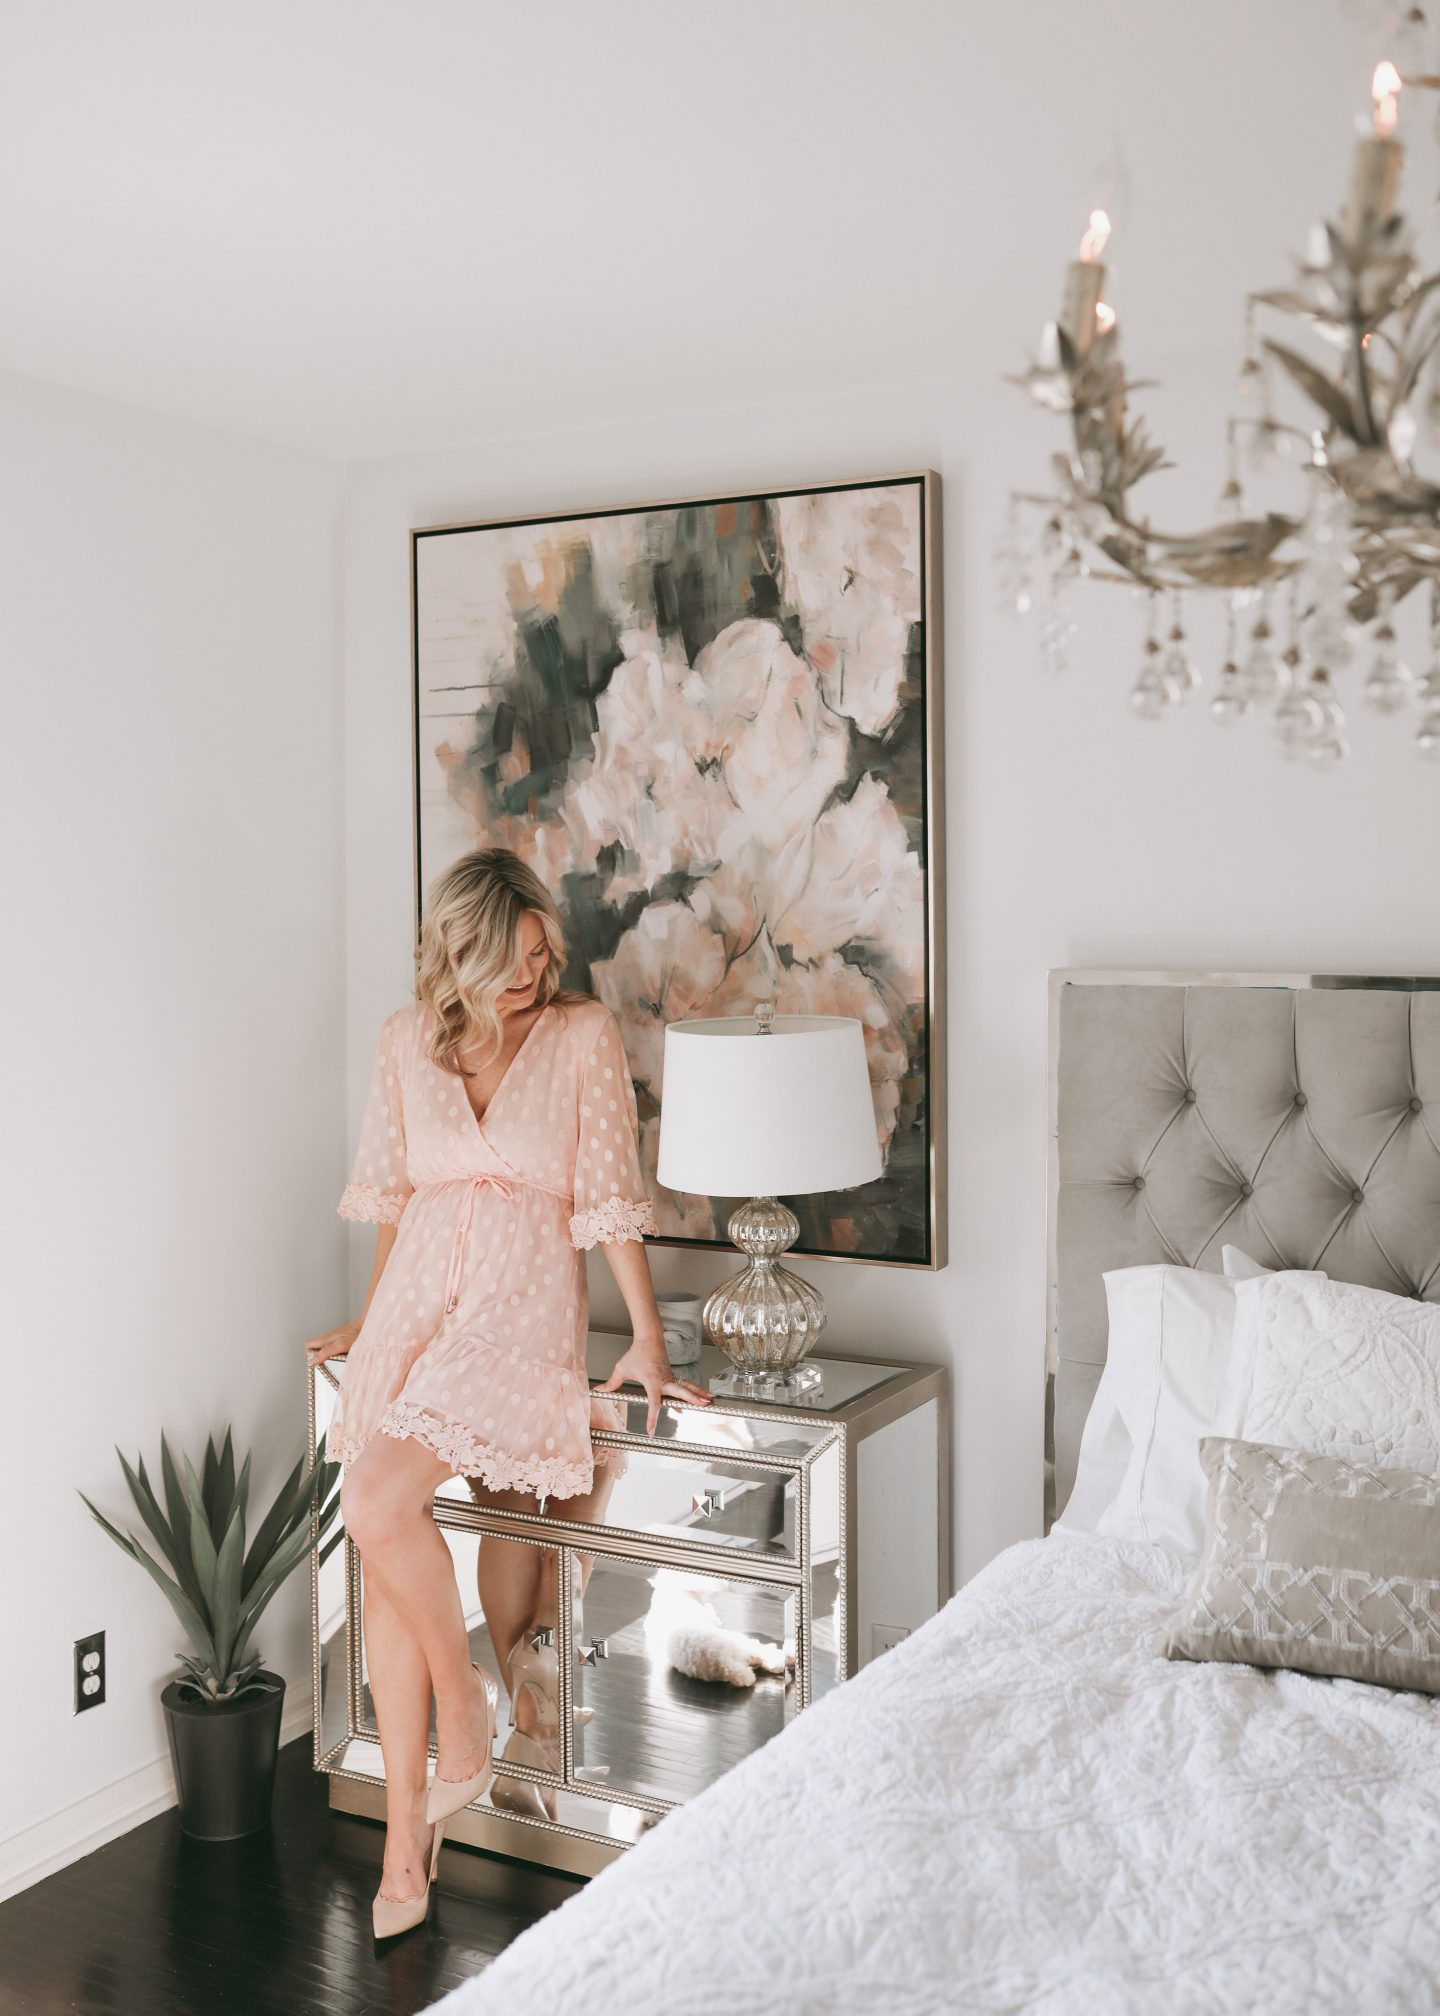 Spring Refresh with Z GALLERIE | A Peek Inside Our Master Bedroom